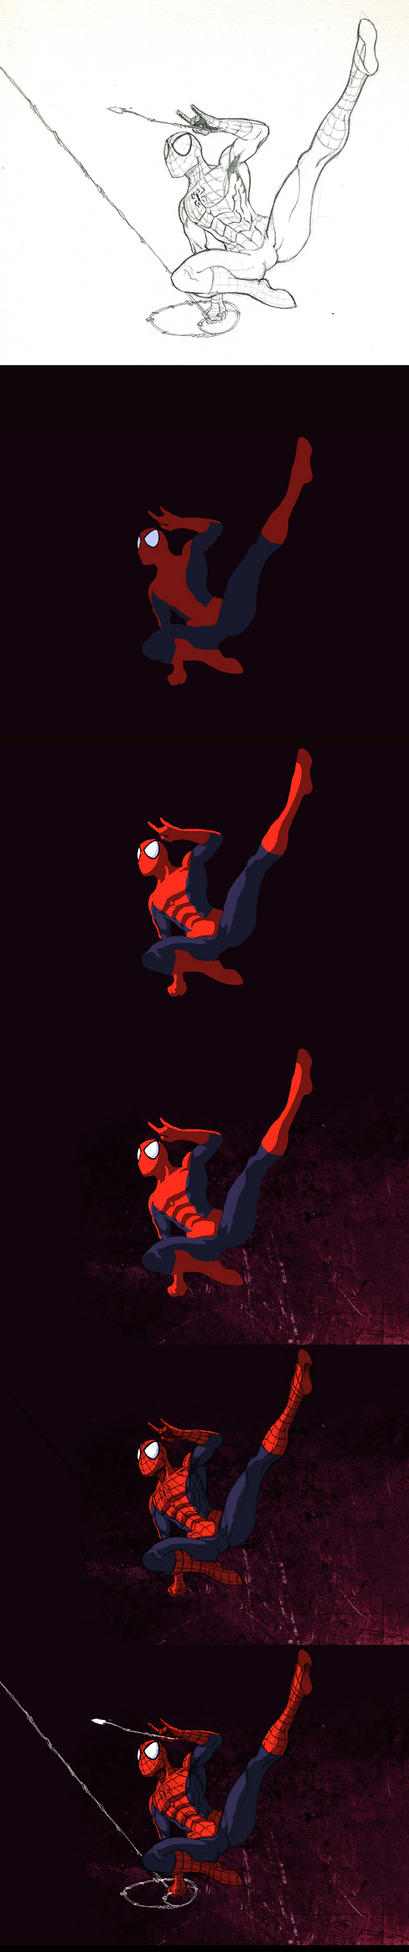 Spiderman colors step by step by Averno7